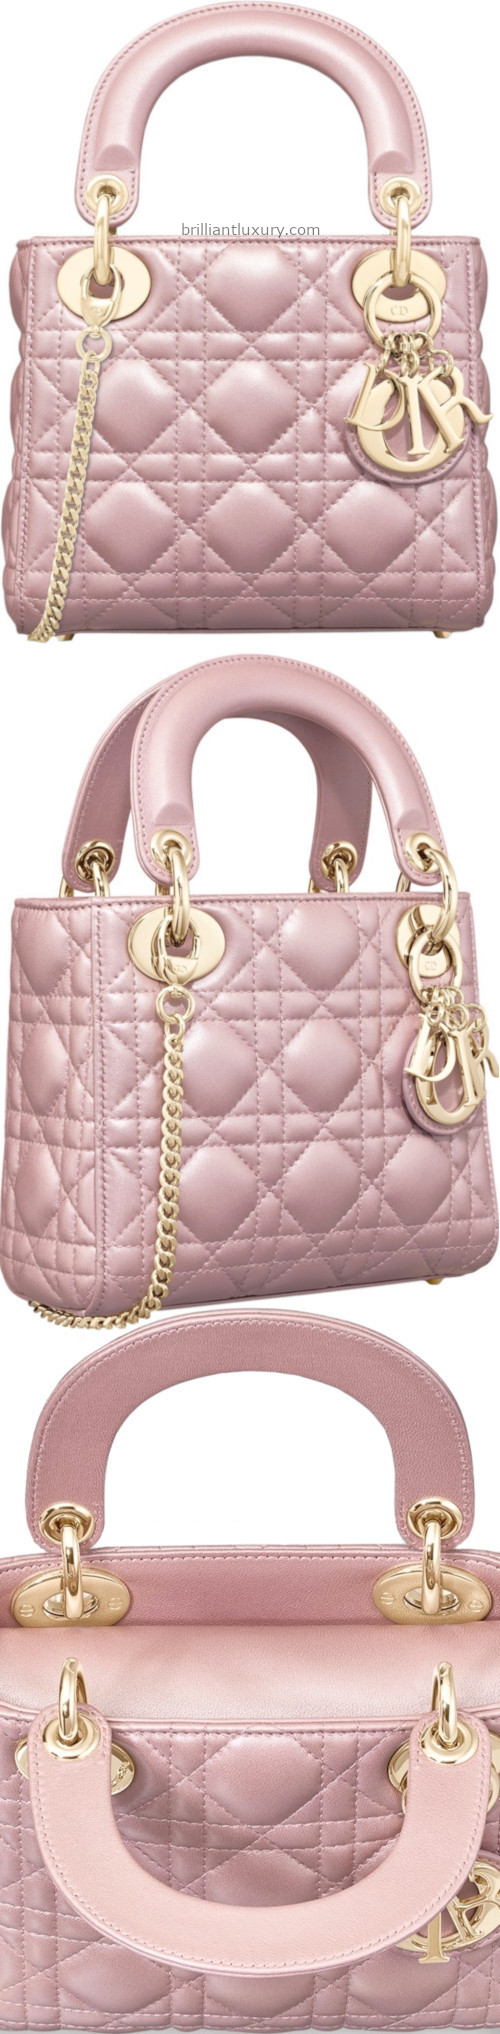 Lotus Pearly Dior Bag